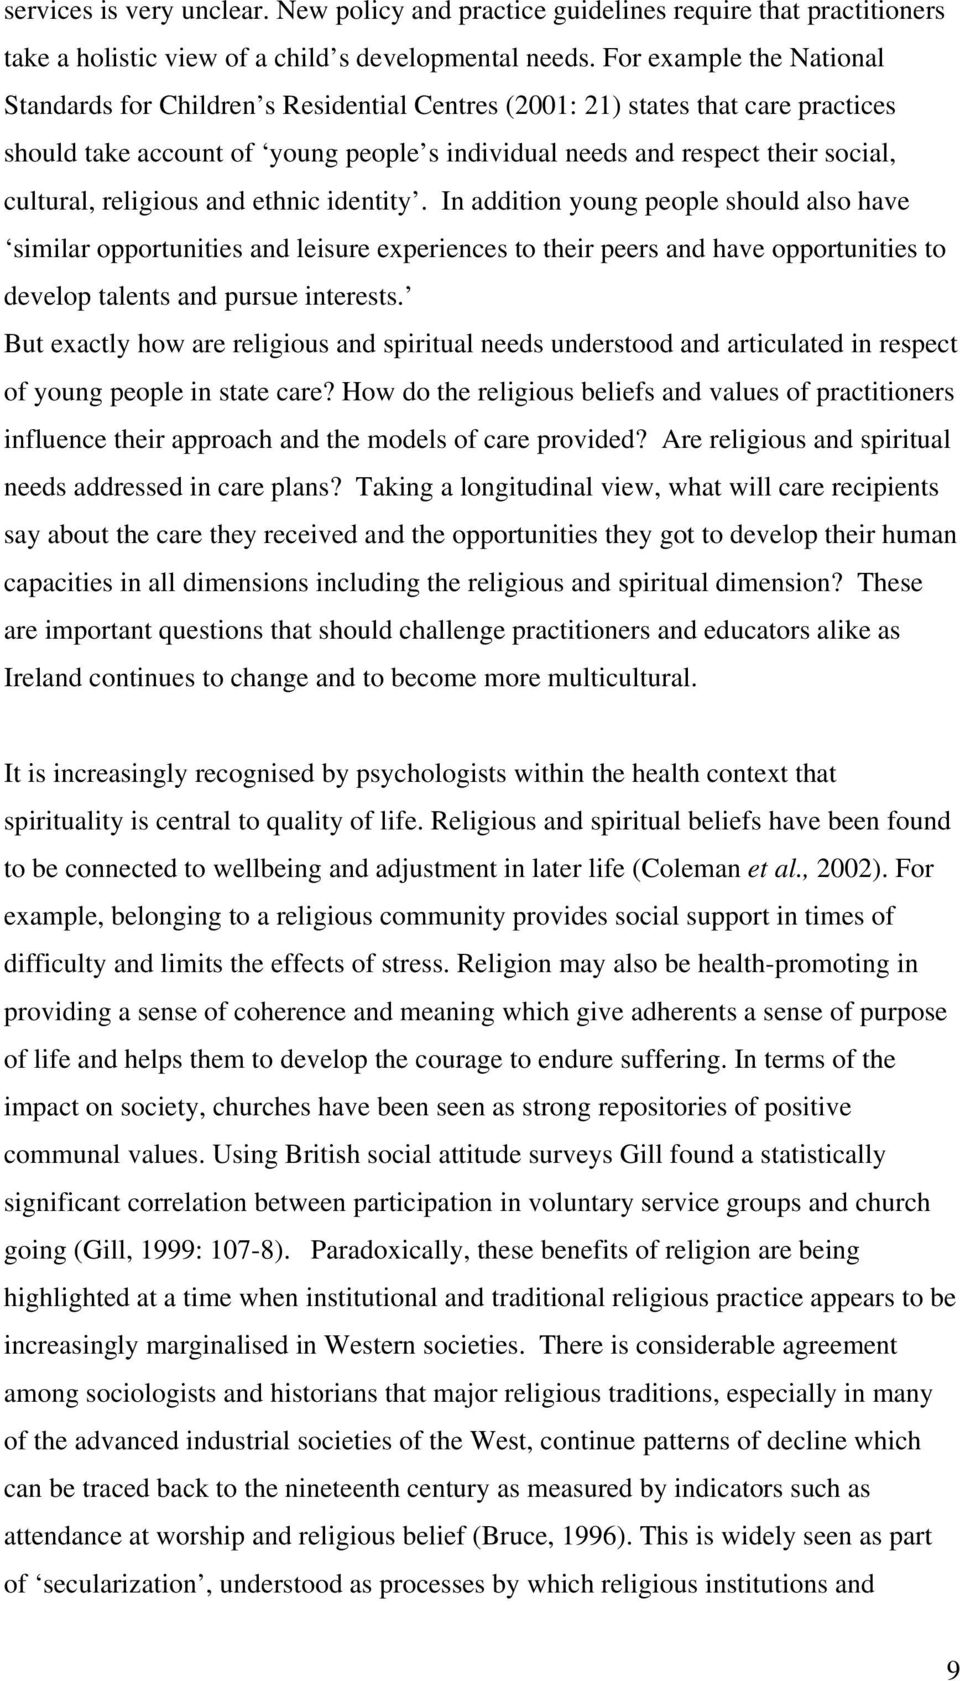 religious and ethnic identity. In addition young people should also have similar opportunities and leisure experiences to their peers and have opportunities to develop talents and pursue interests.